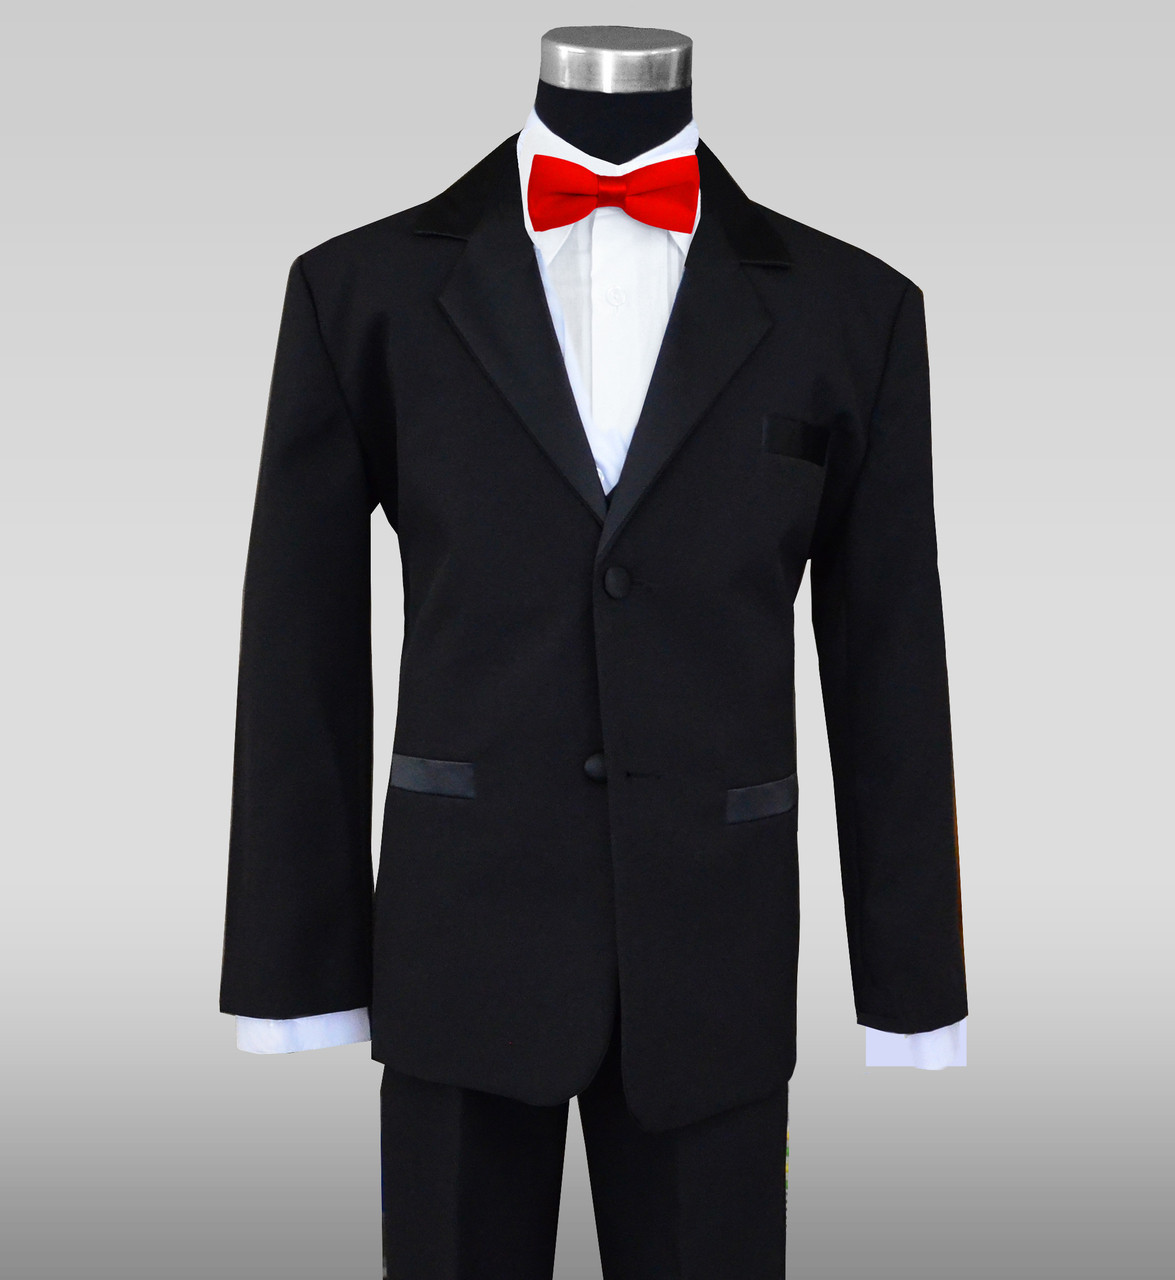 678ad3b849a1 Boys Tuxedos in Black with Red Slim Bow Tie